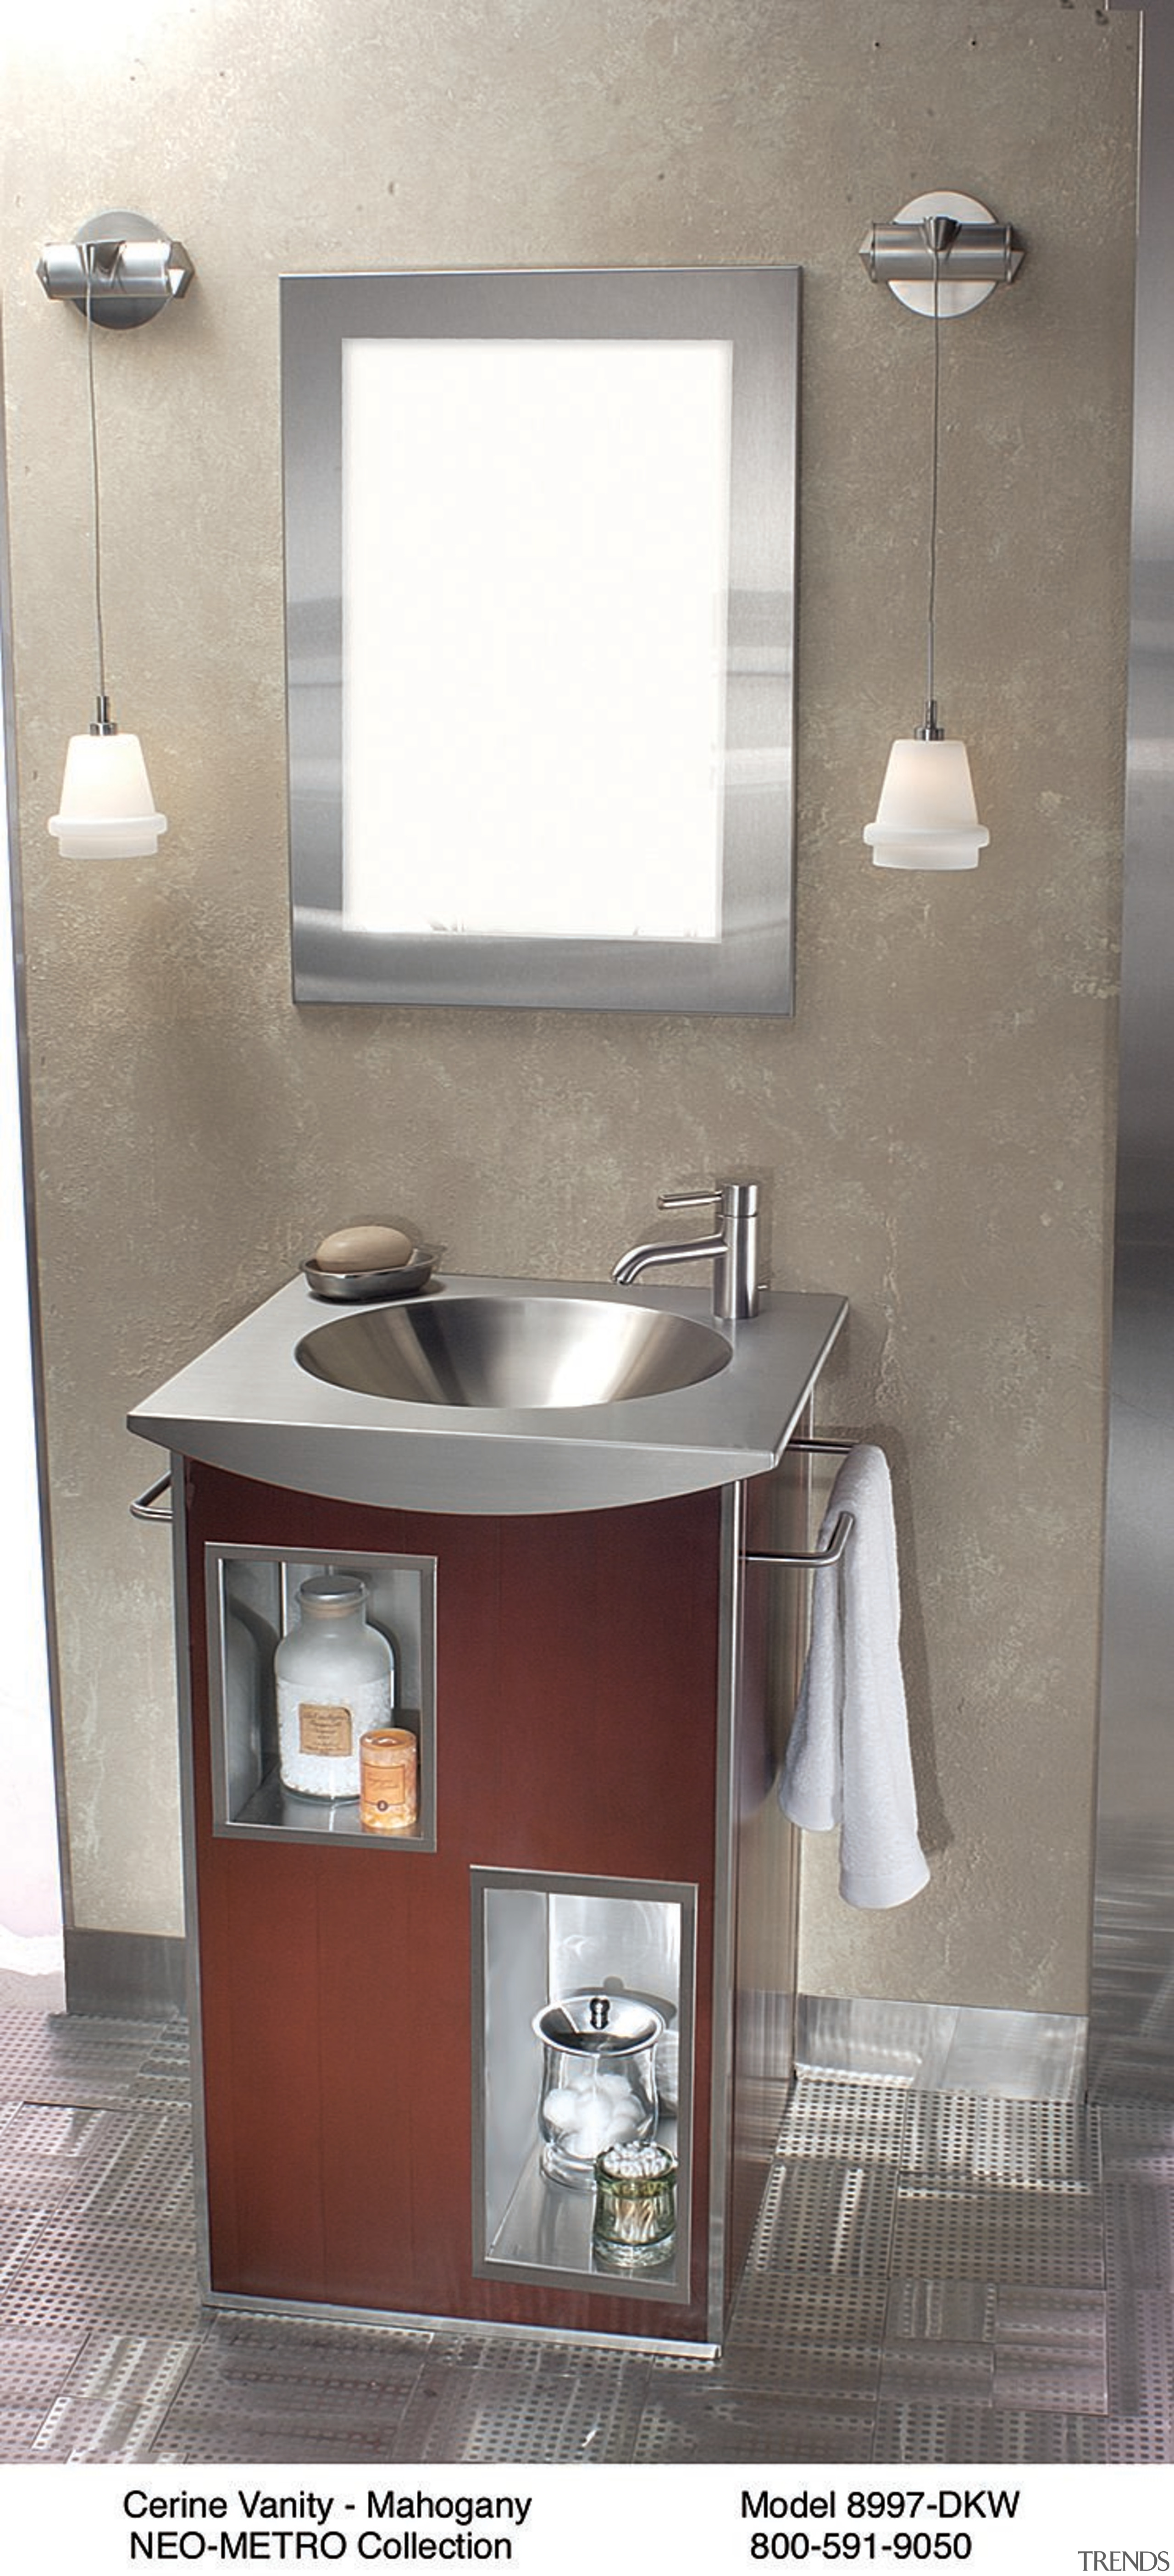 Inner view of the hand basin & cabinetry bathroom, bathroom accessory, bathroom cabinet, plumbing fixture, product design, sink, tap, gray, white